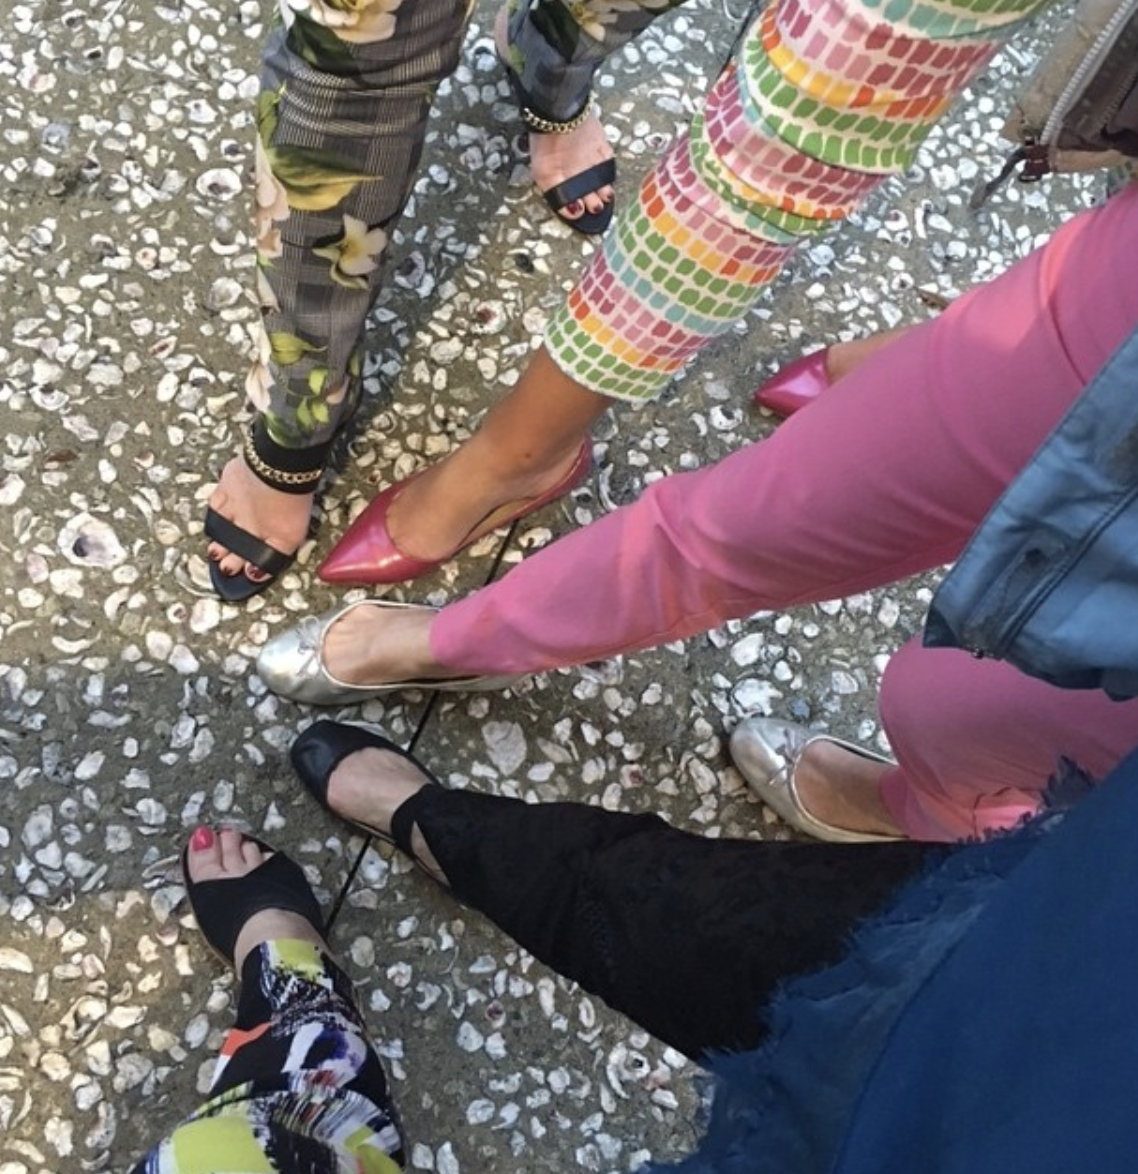 Krazy Larry Pants: Wild Patterns and Colors